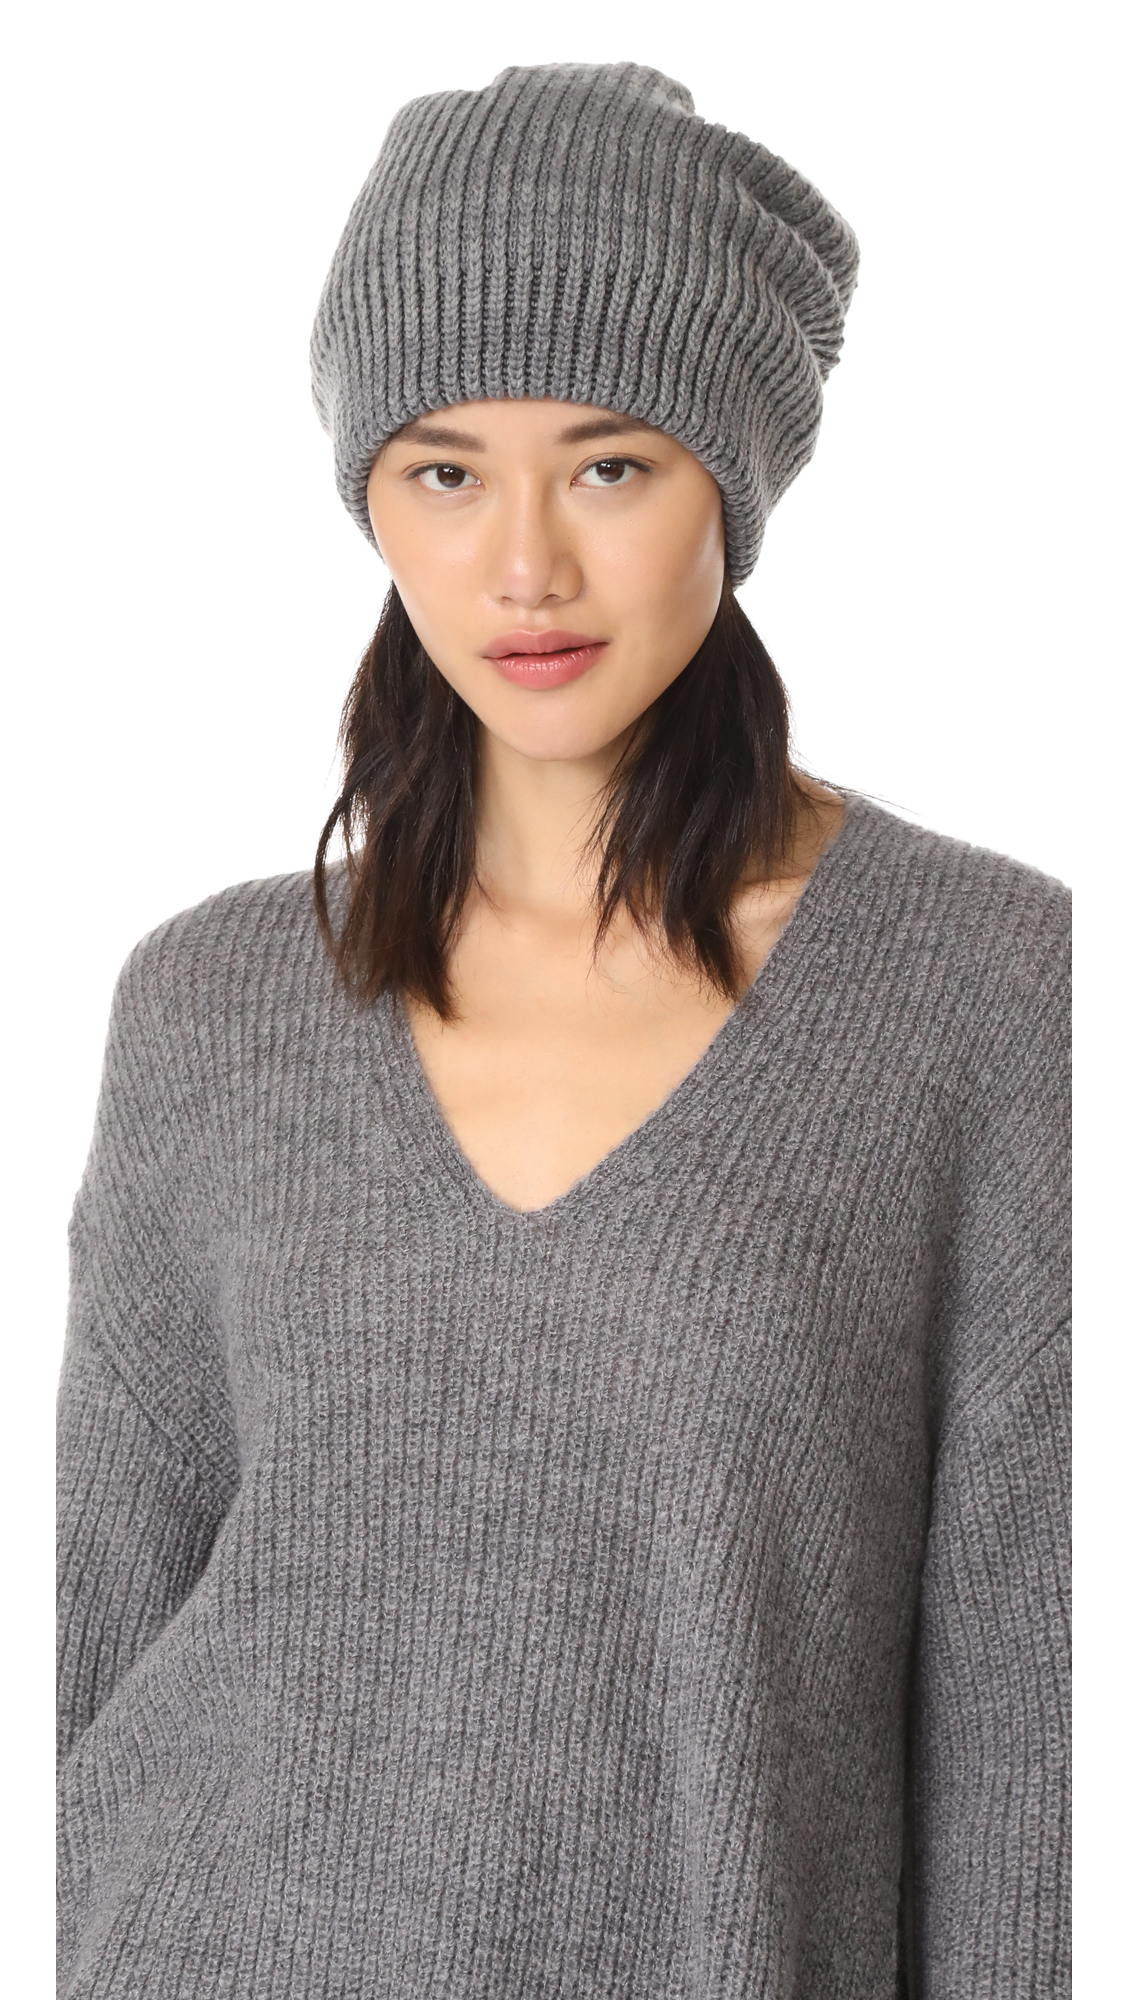 Free People All Day Everyday Slouchy Beanie Hat - Grey